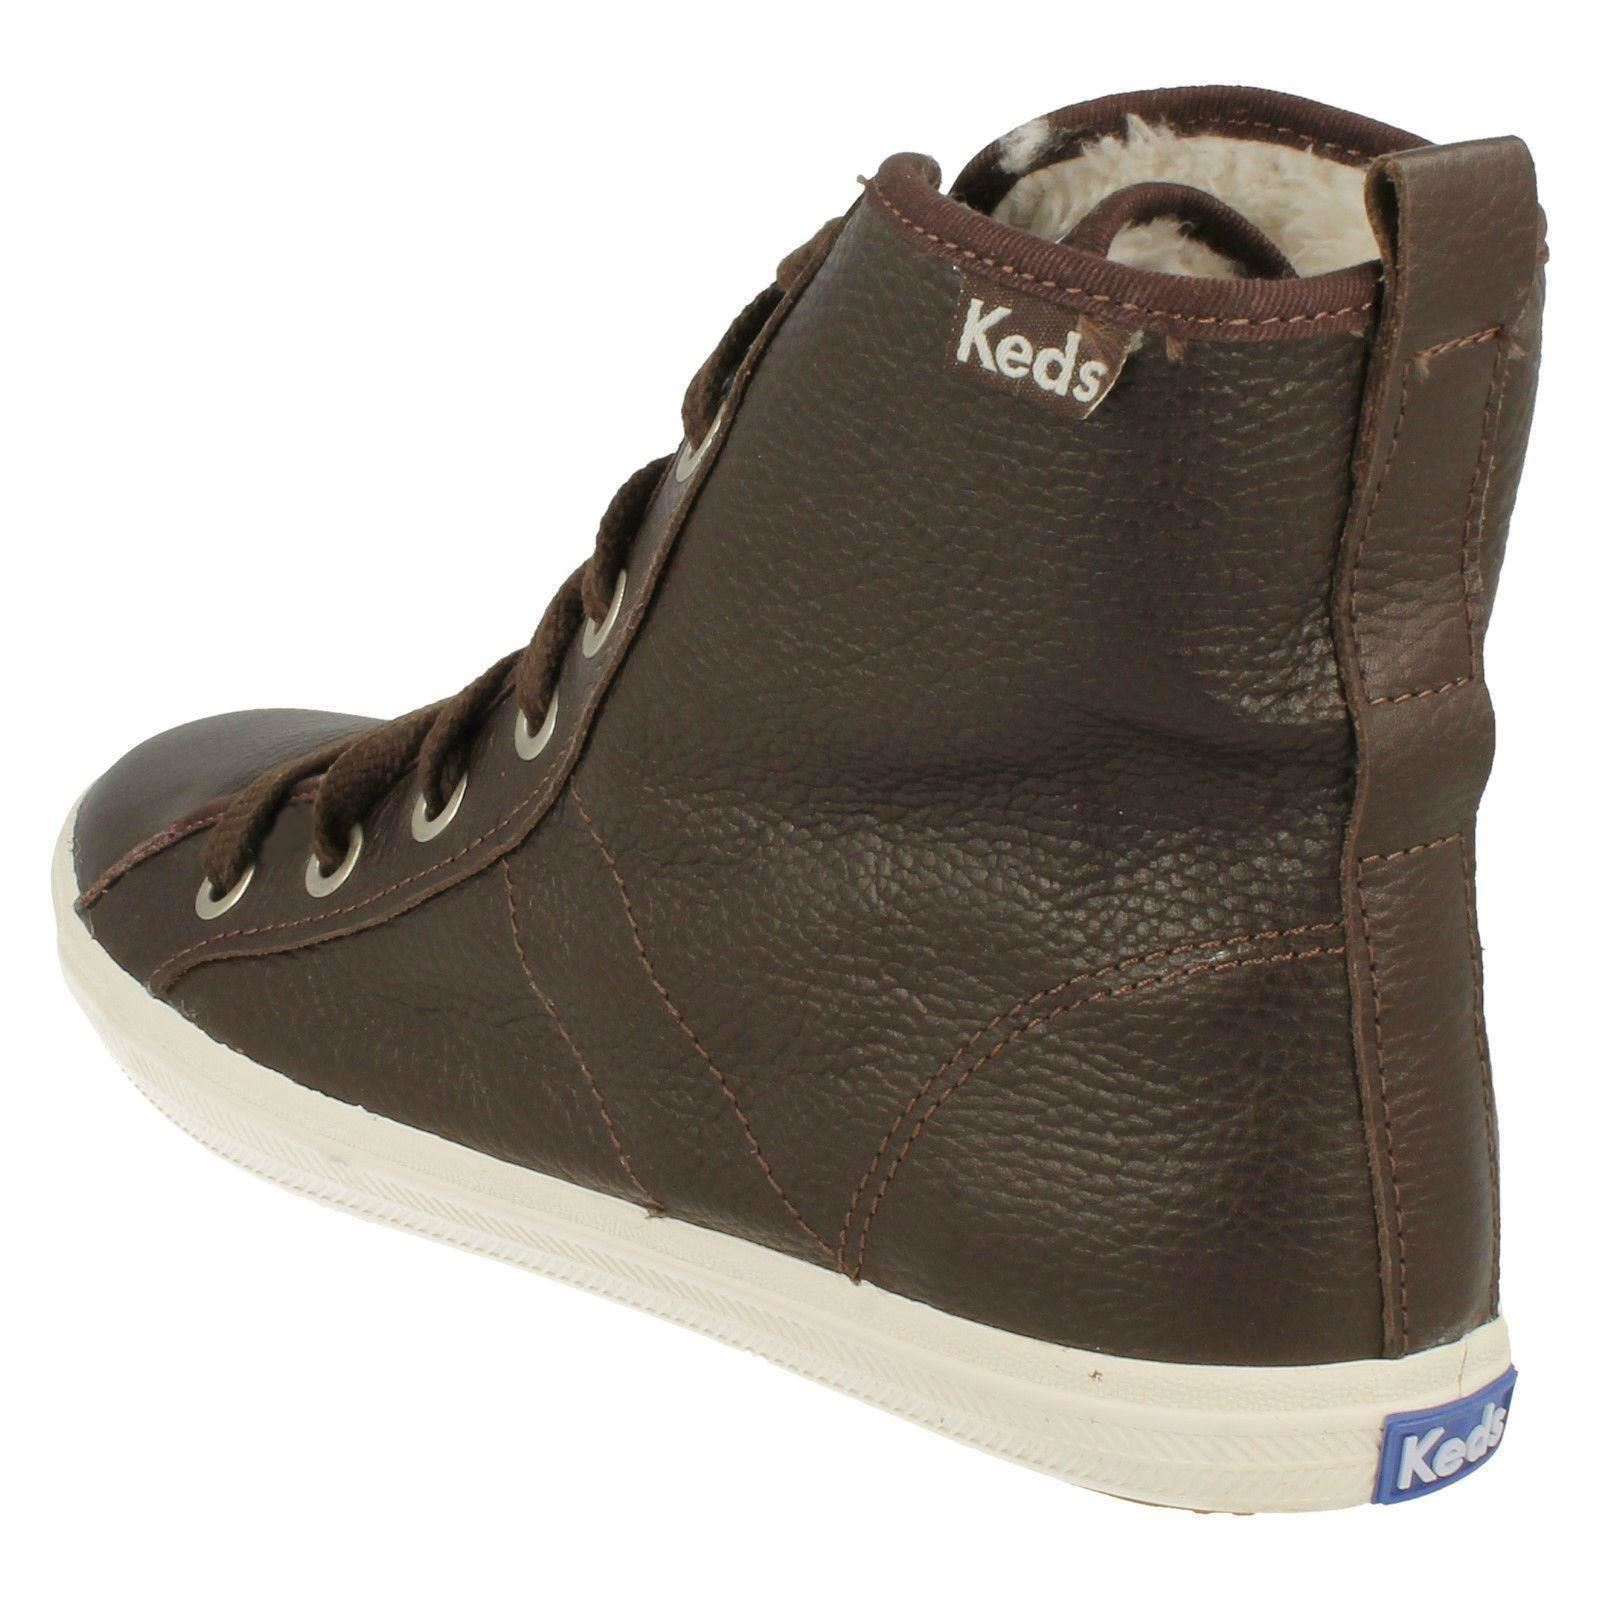 keds ankle boot